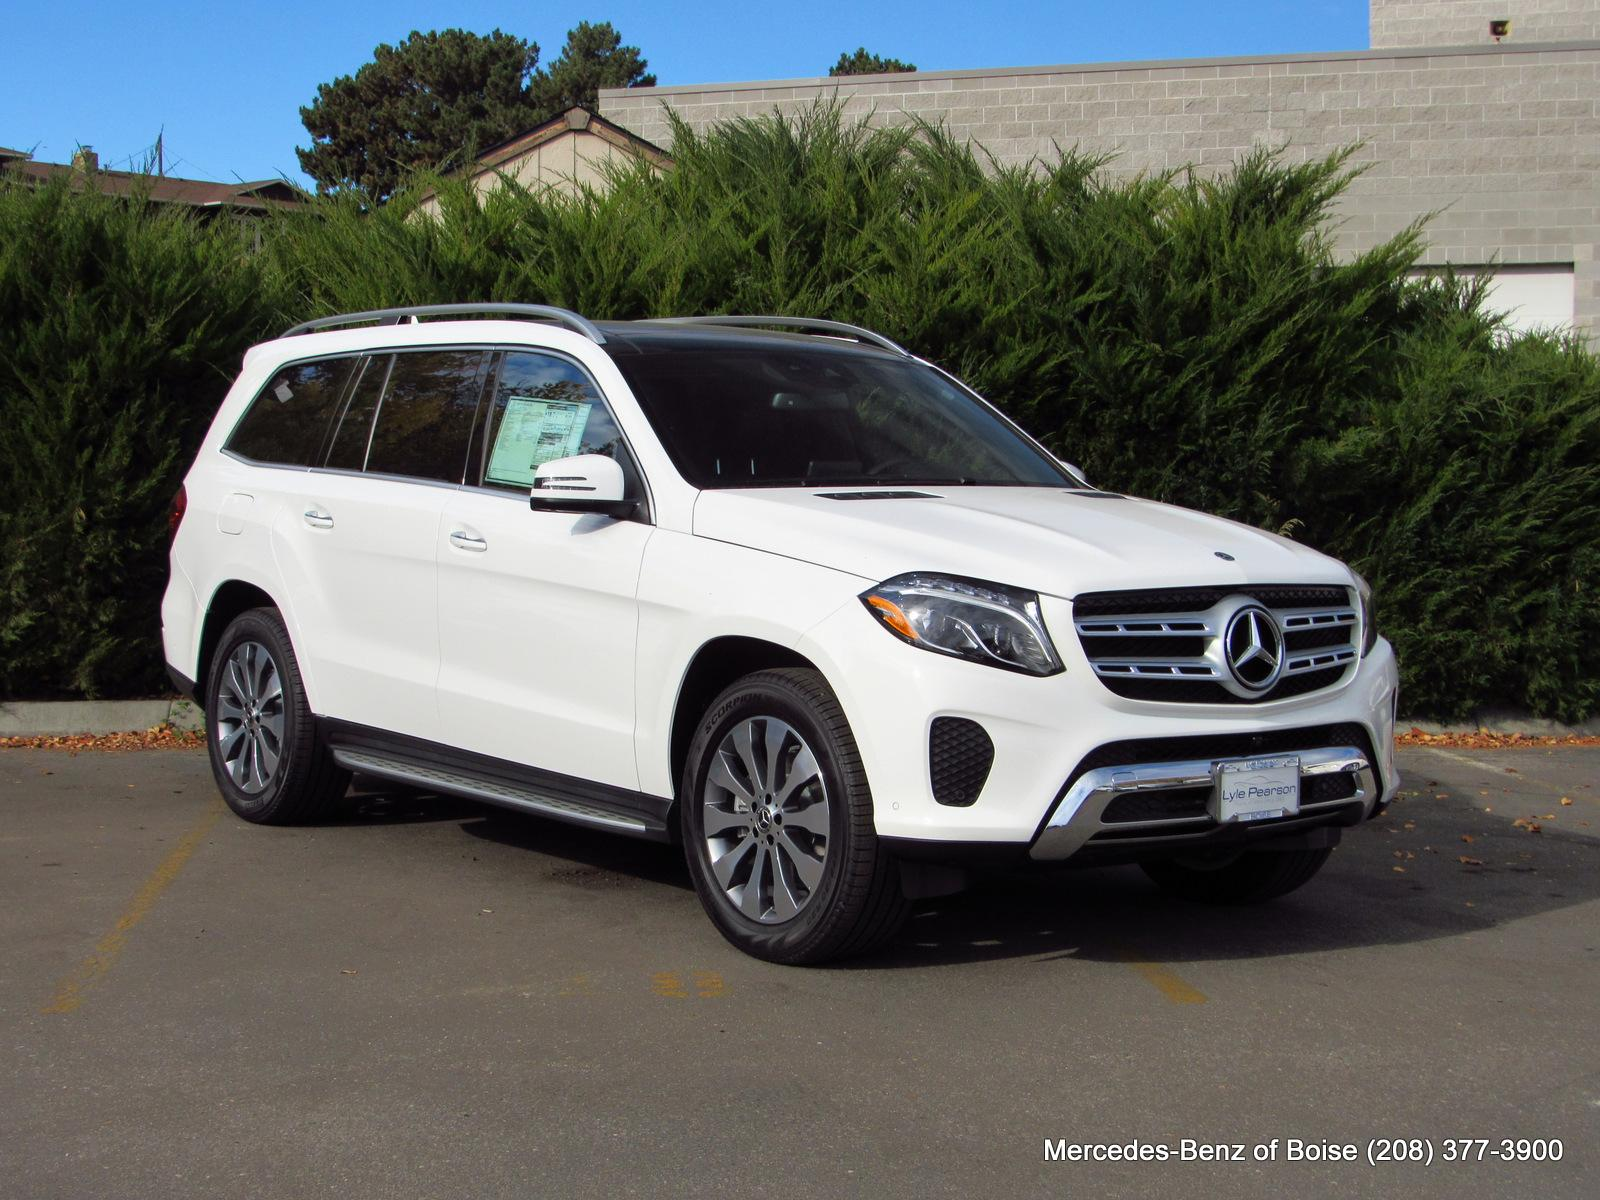 Mercedes Benz Suvs >> New 2019 Mercedes Benz Gls Gls 450 4matic Suv Sport Utility In